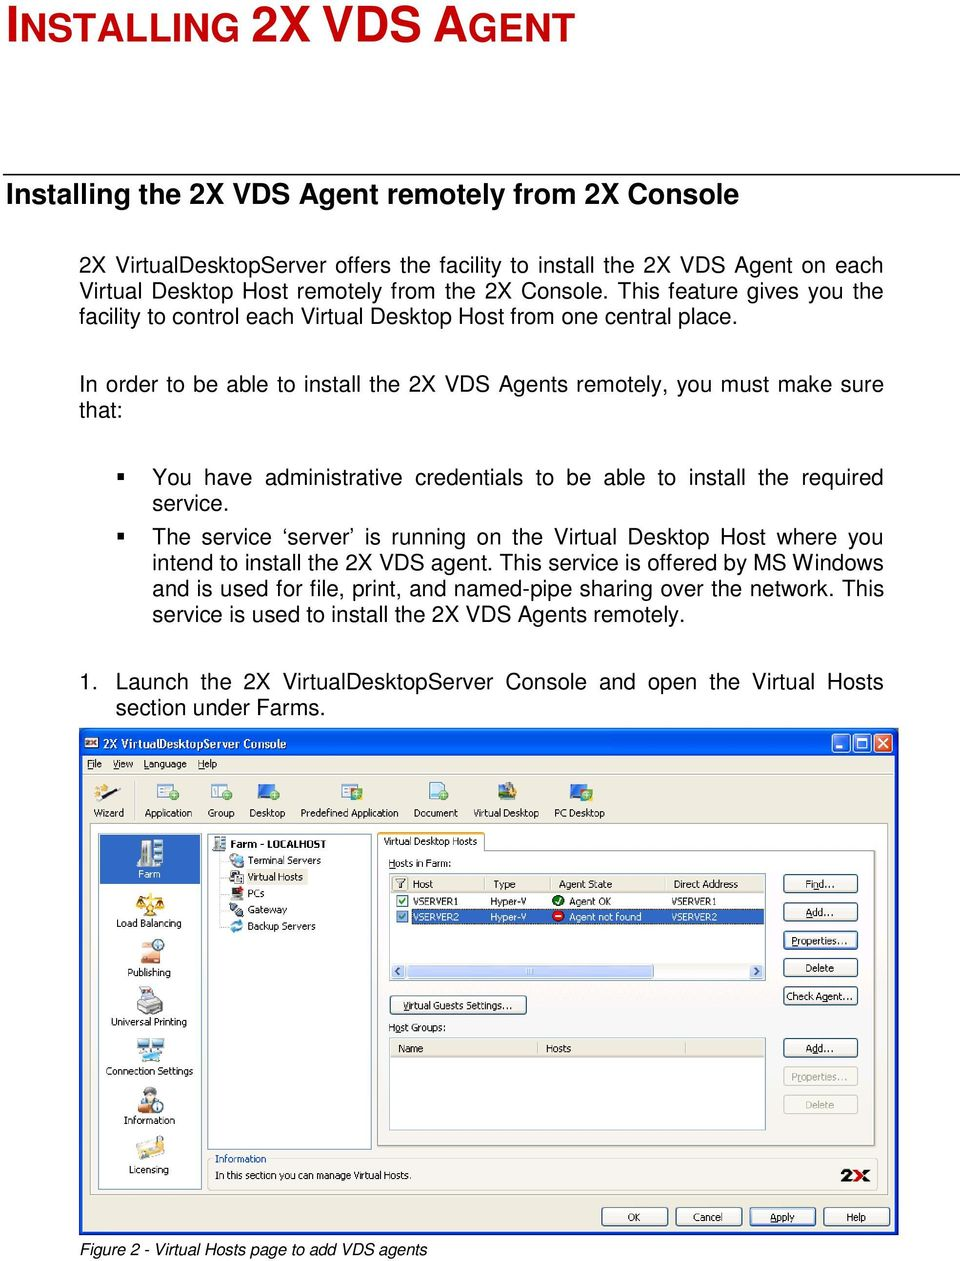 In order to be able to install the 2X VDS Agents remotely, you must make sure that: You have administrative credentials to be able to install the required service.